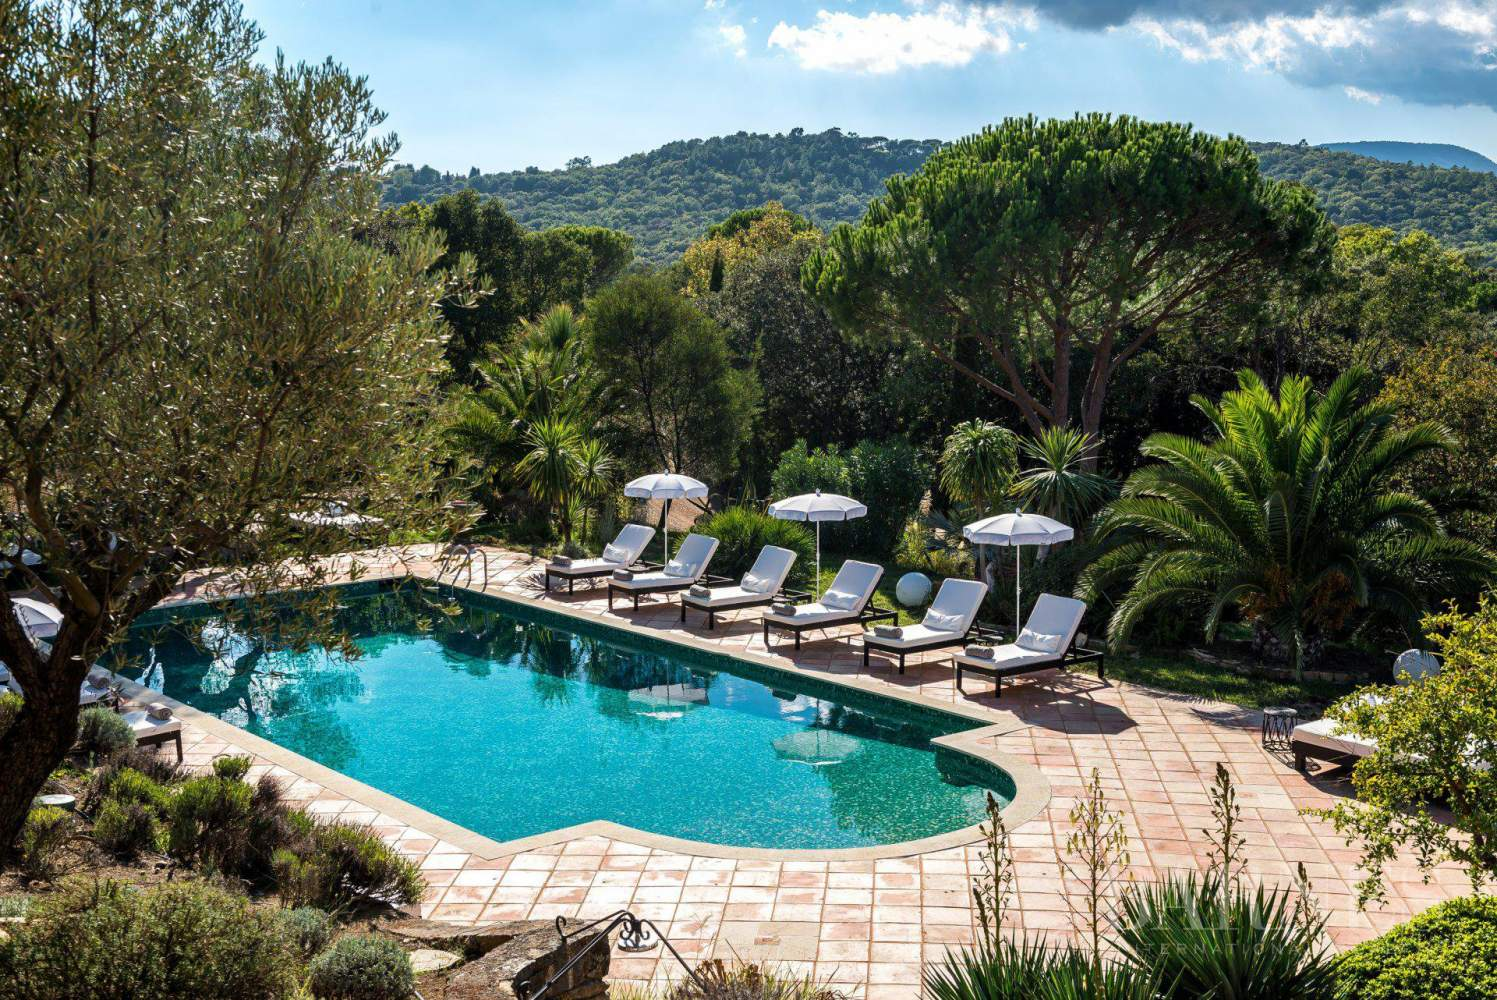 GOLFE DE SAINT-TROPEZ - LA CROIX VALMER - Beautiful Provencal house - 6 bedrooms - Pool picture 2